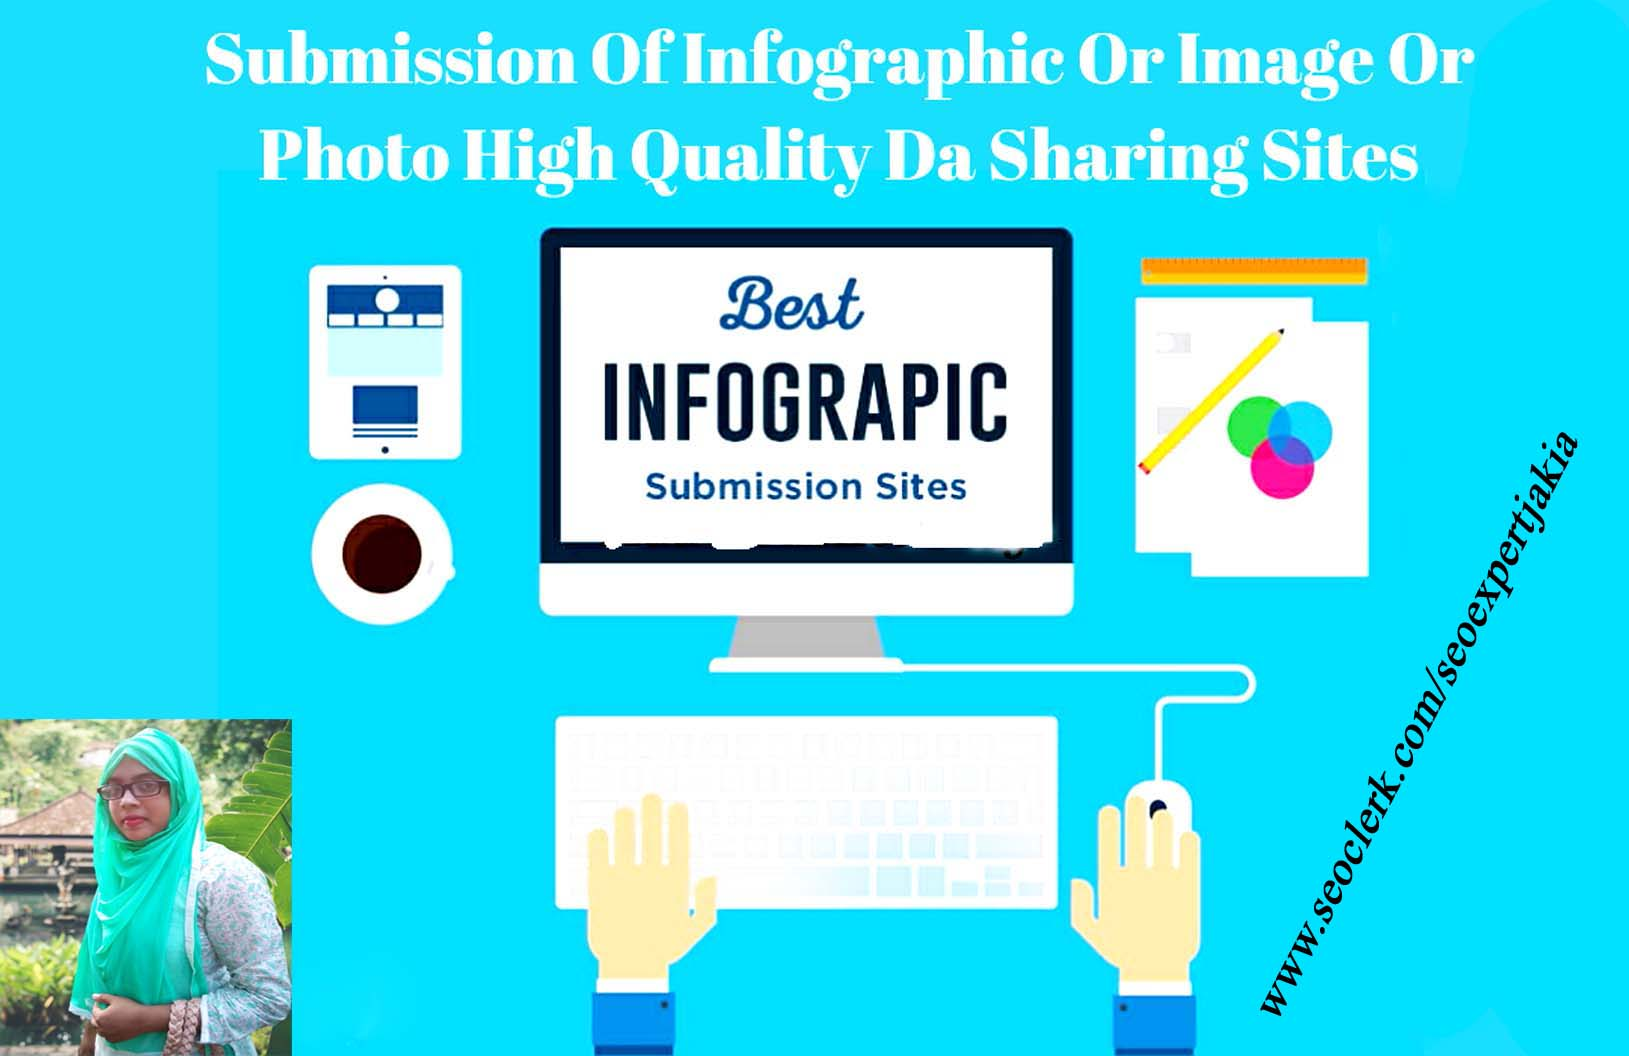 I will do image or photo or infographic submission only 25 high quality sharing sites.